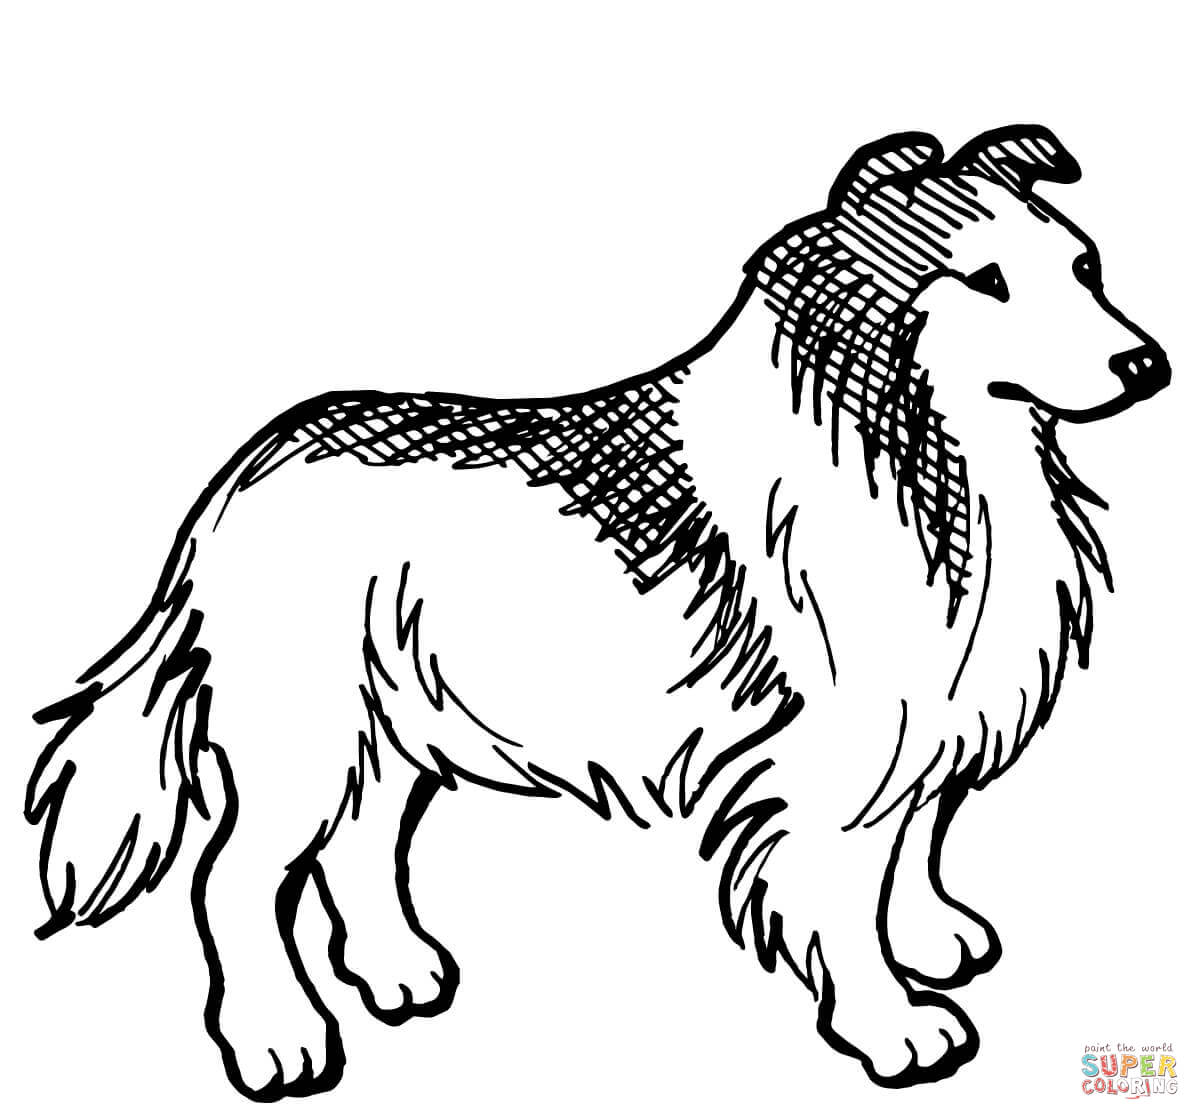 Collie coloring #19, Download drawings